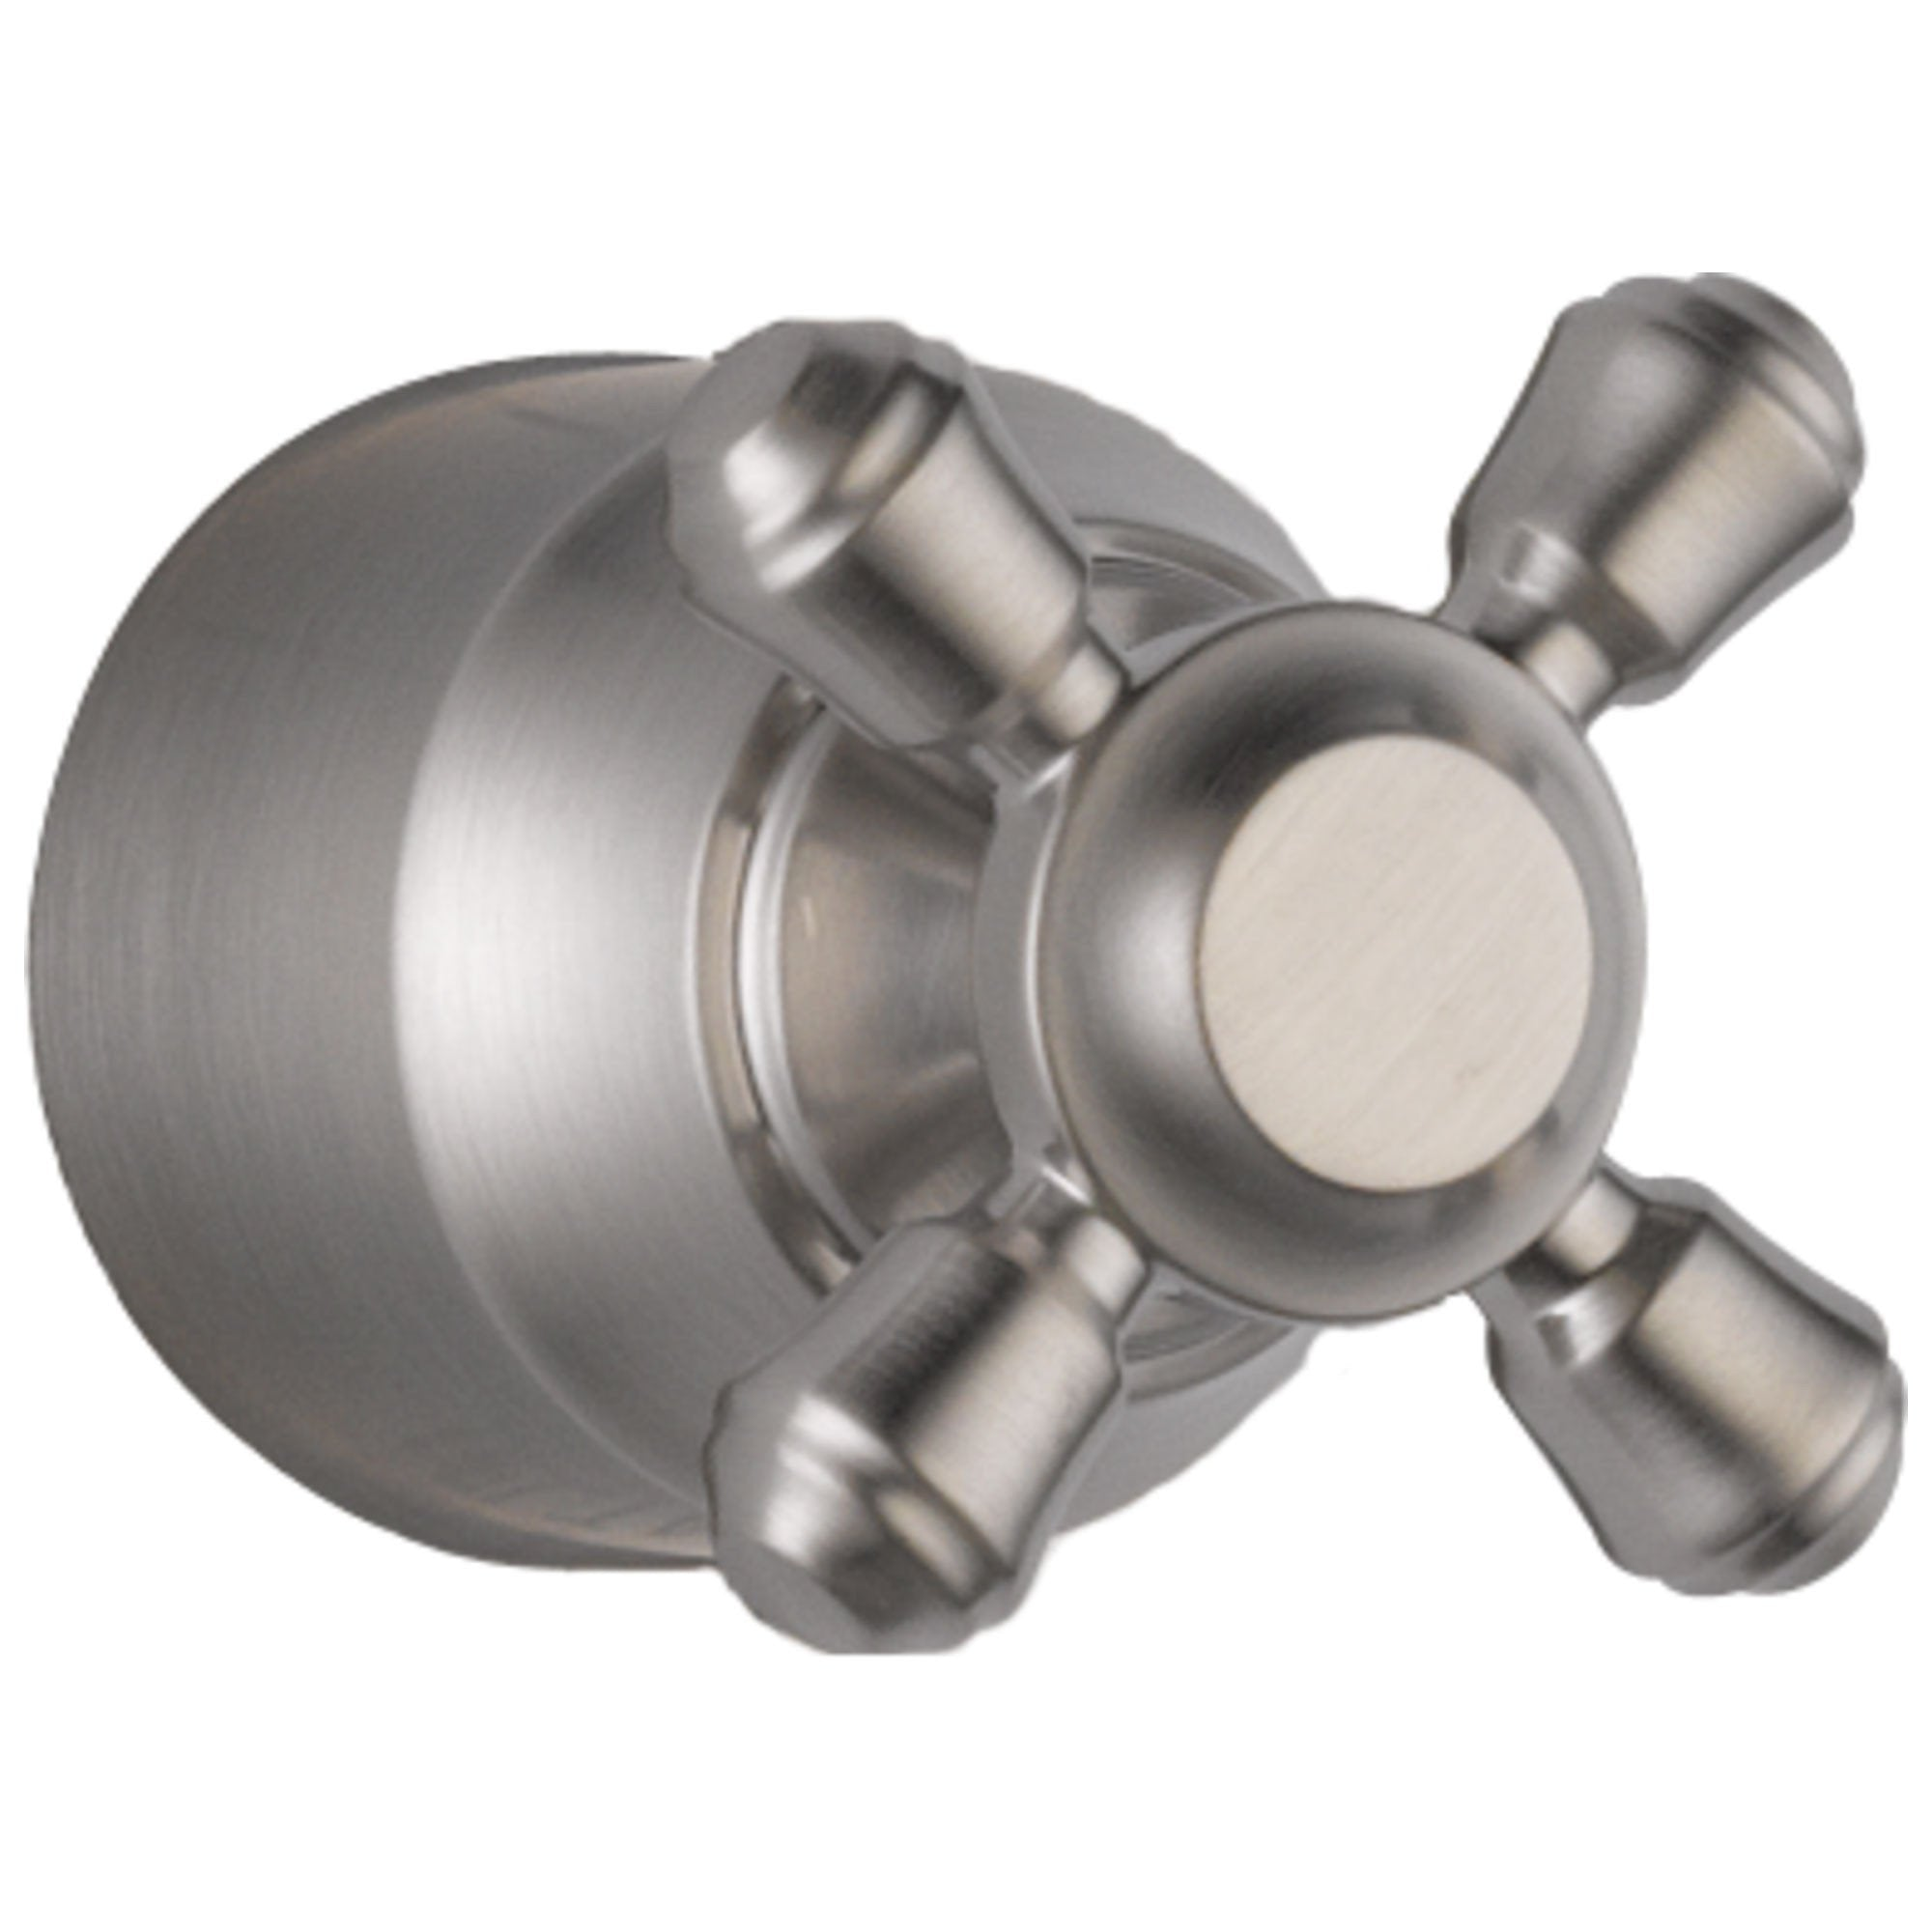 Delta Cassidy Collection Stainless Steel Finish Diverter / Transfer Valve Cross Handle - Quantity 1 Included 579627